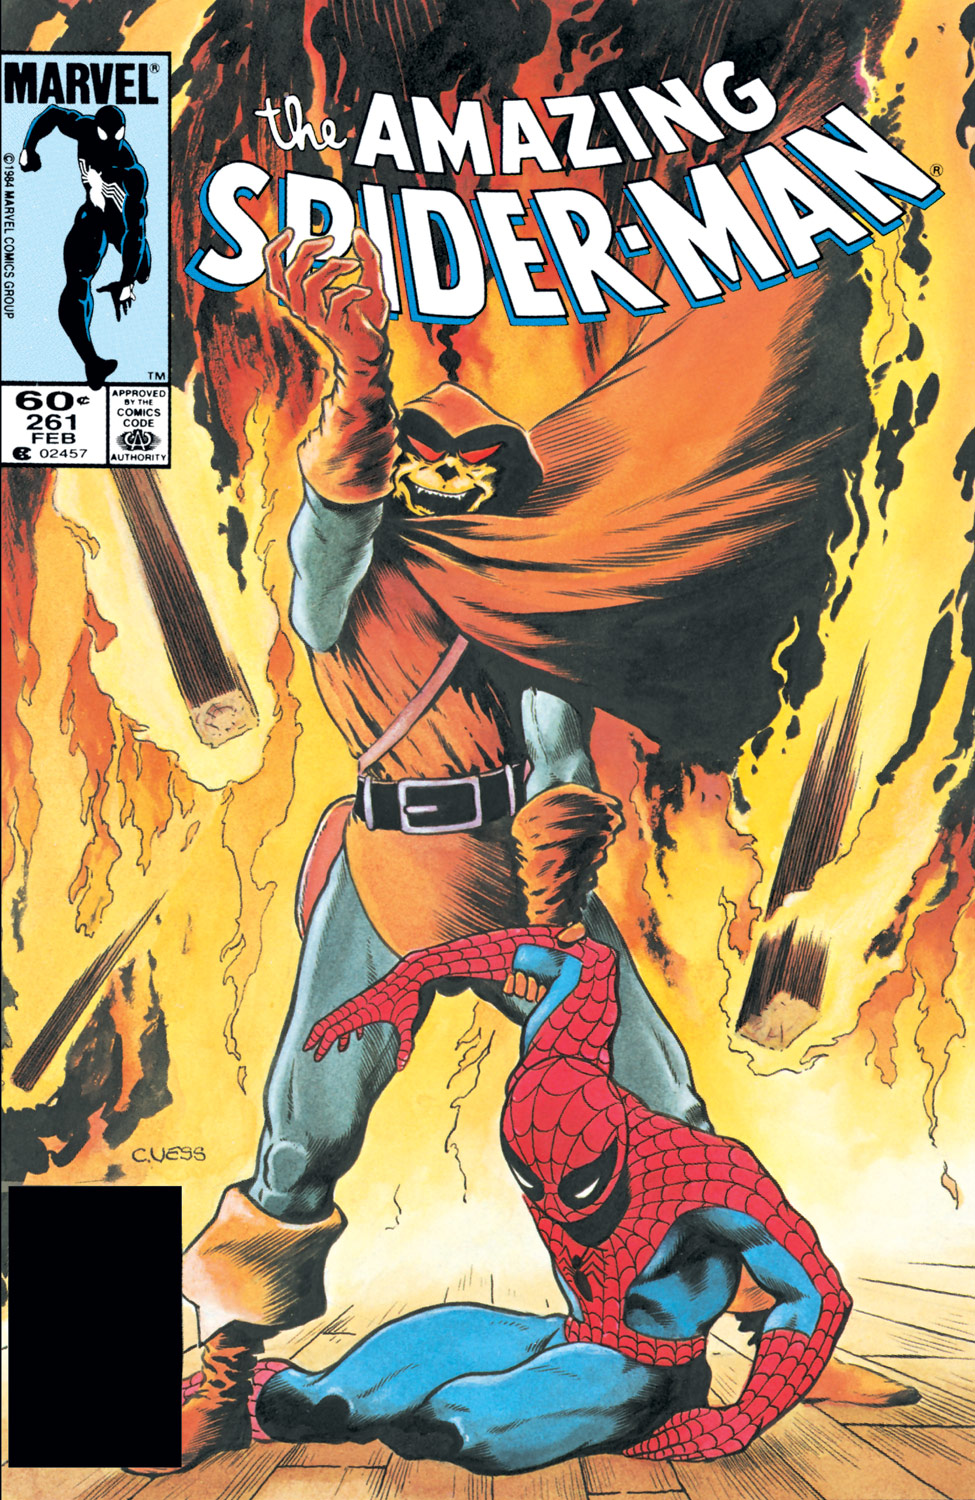 The Amazing Spider-Man (1963) #261